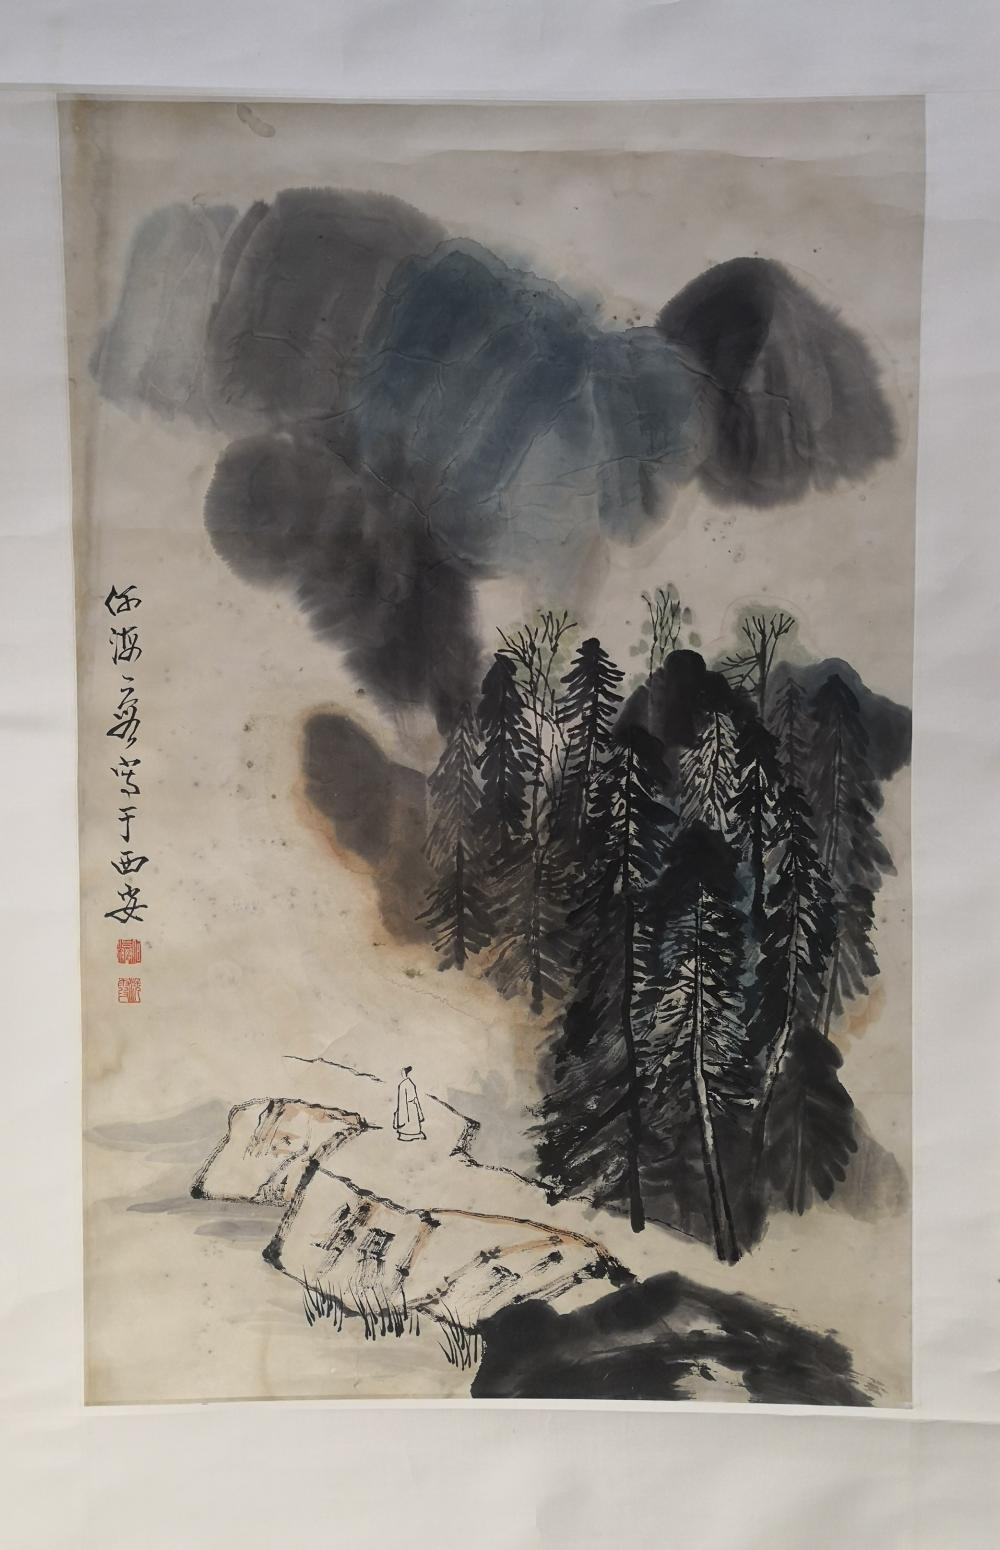 A CHINESE PAINTING BY HE HAIXIA